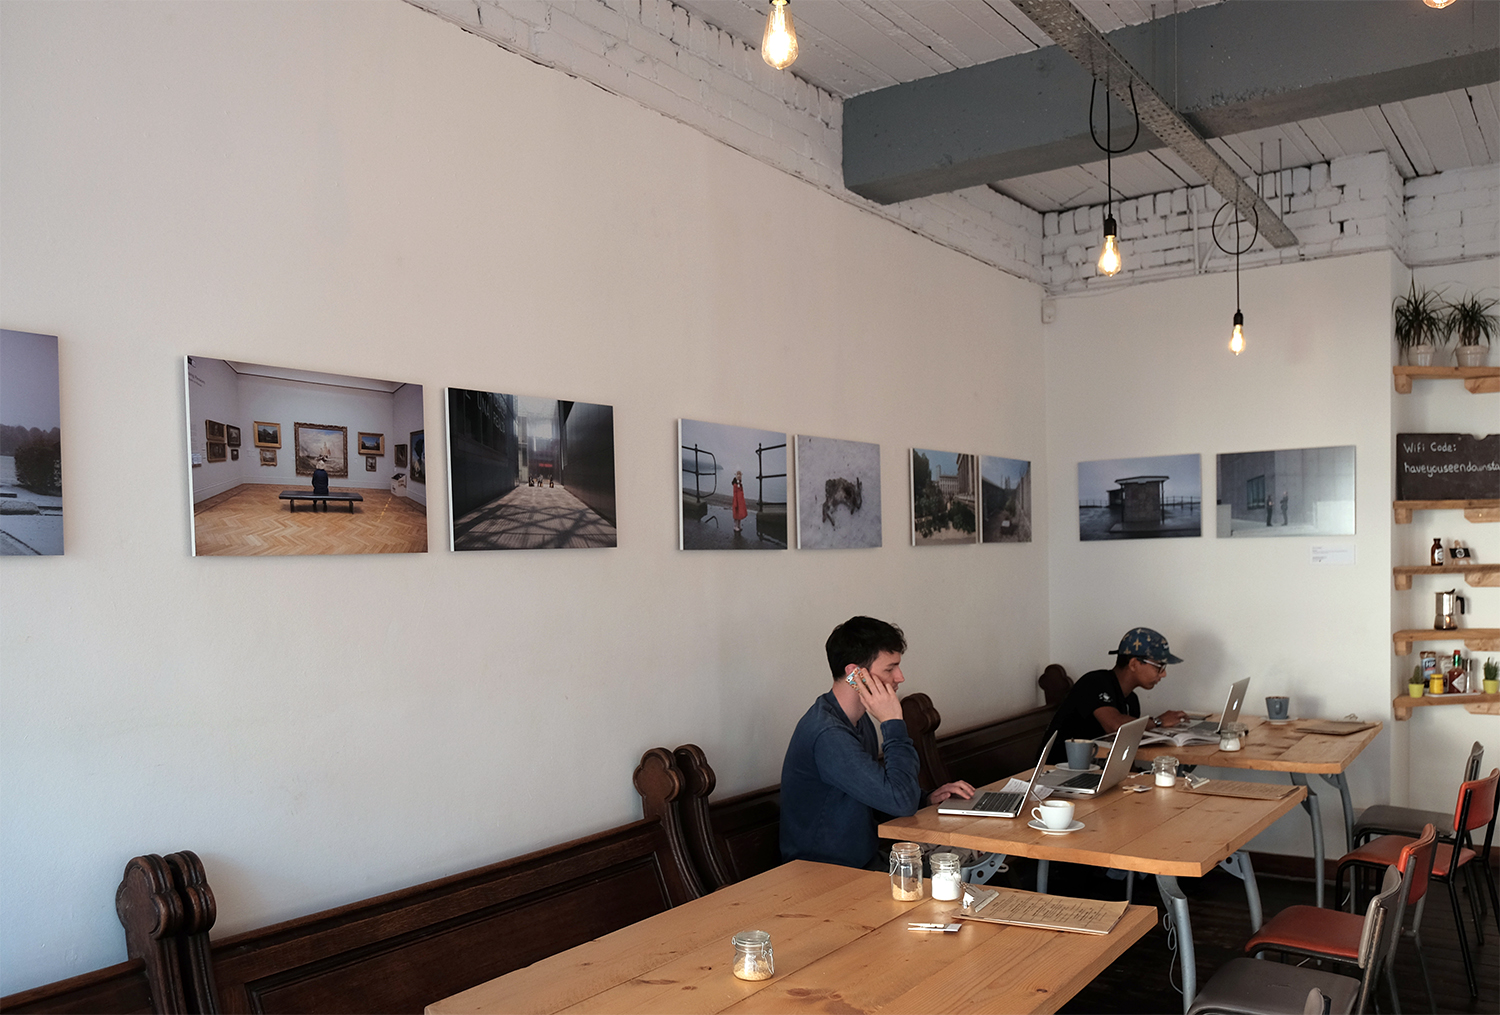 Work by Eleri Griffiths on the walls at Littleman Coffee in Cardiff